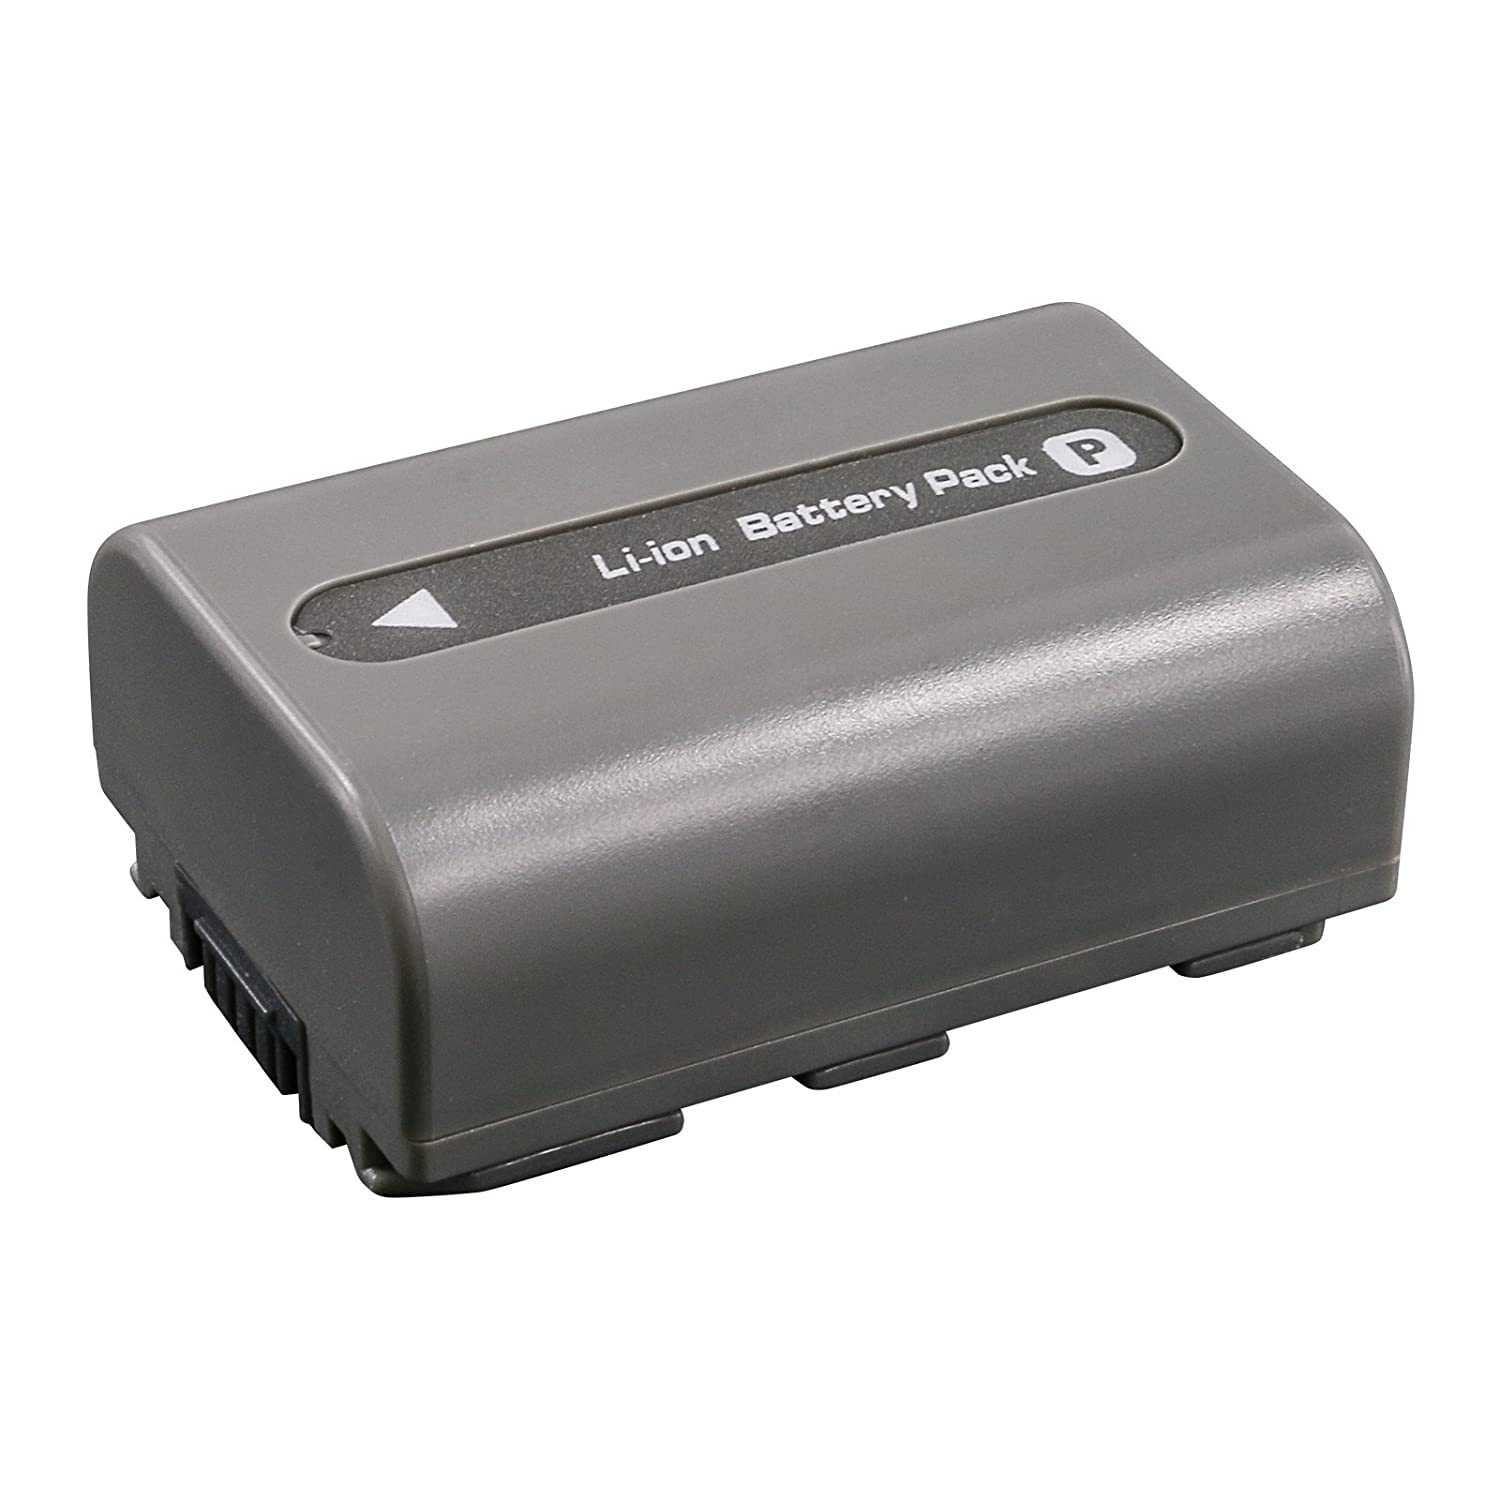 CCD-TR300 Dantona Replacement Battery for Sony